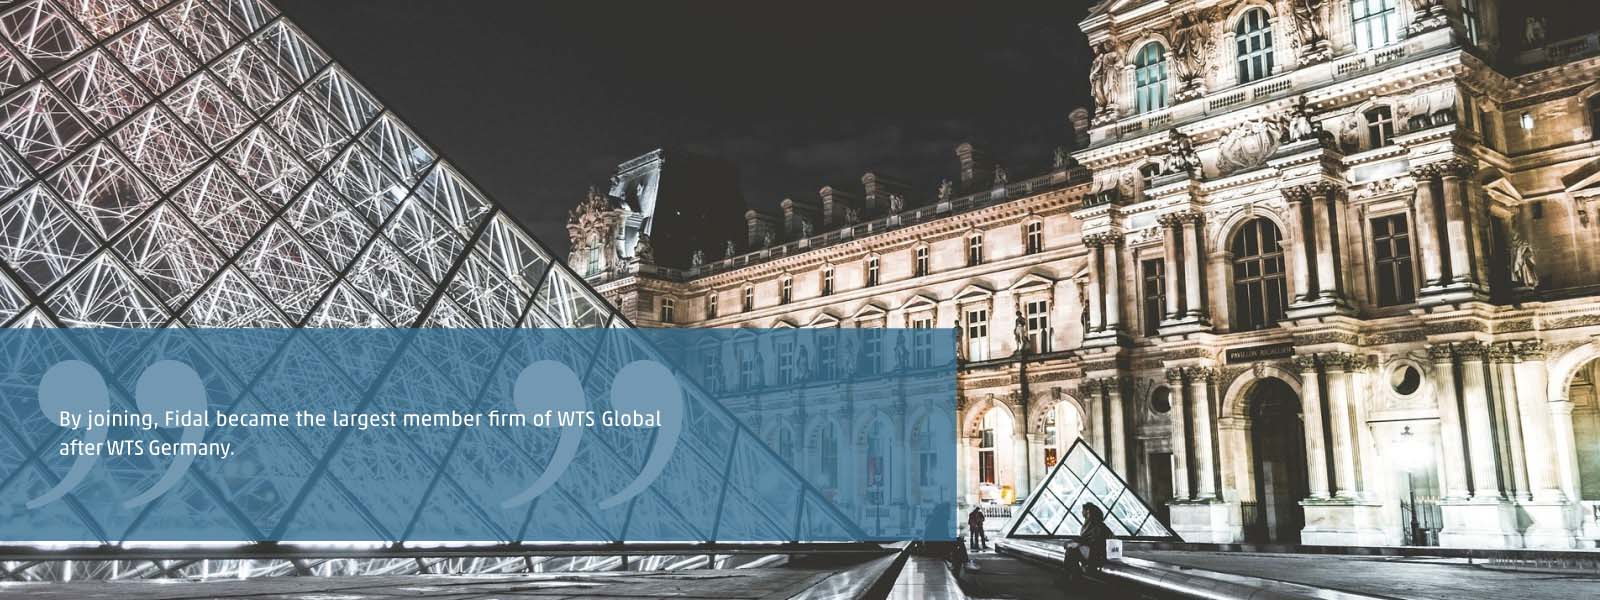 France's largest business law firm joins WTS Global